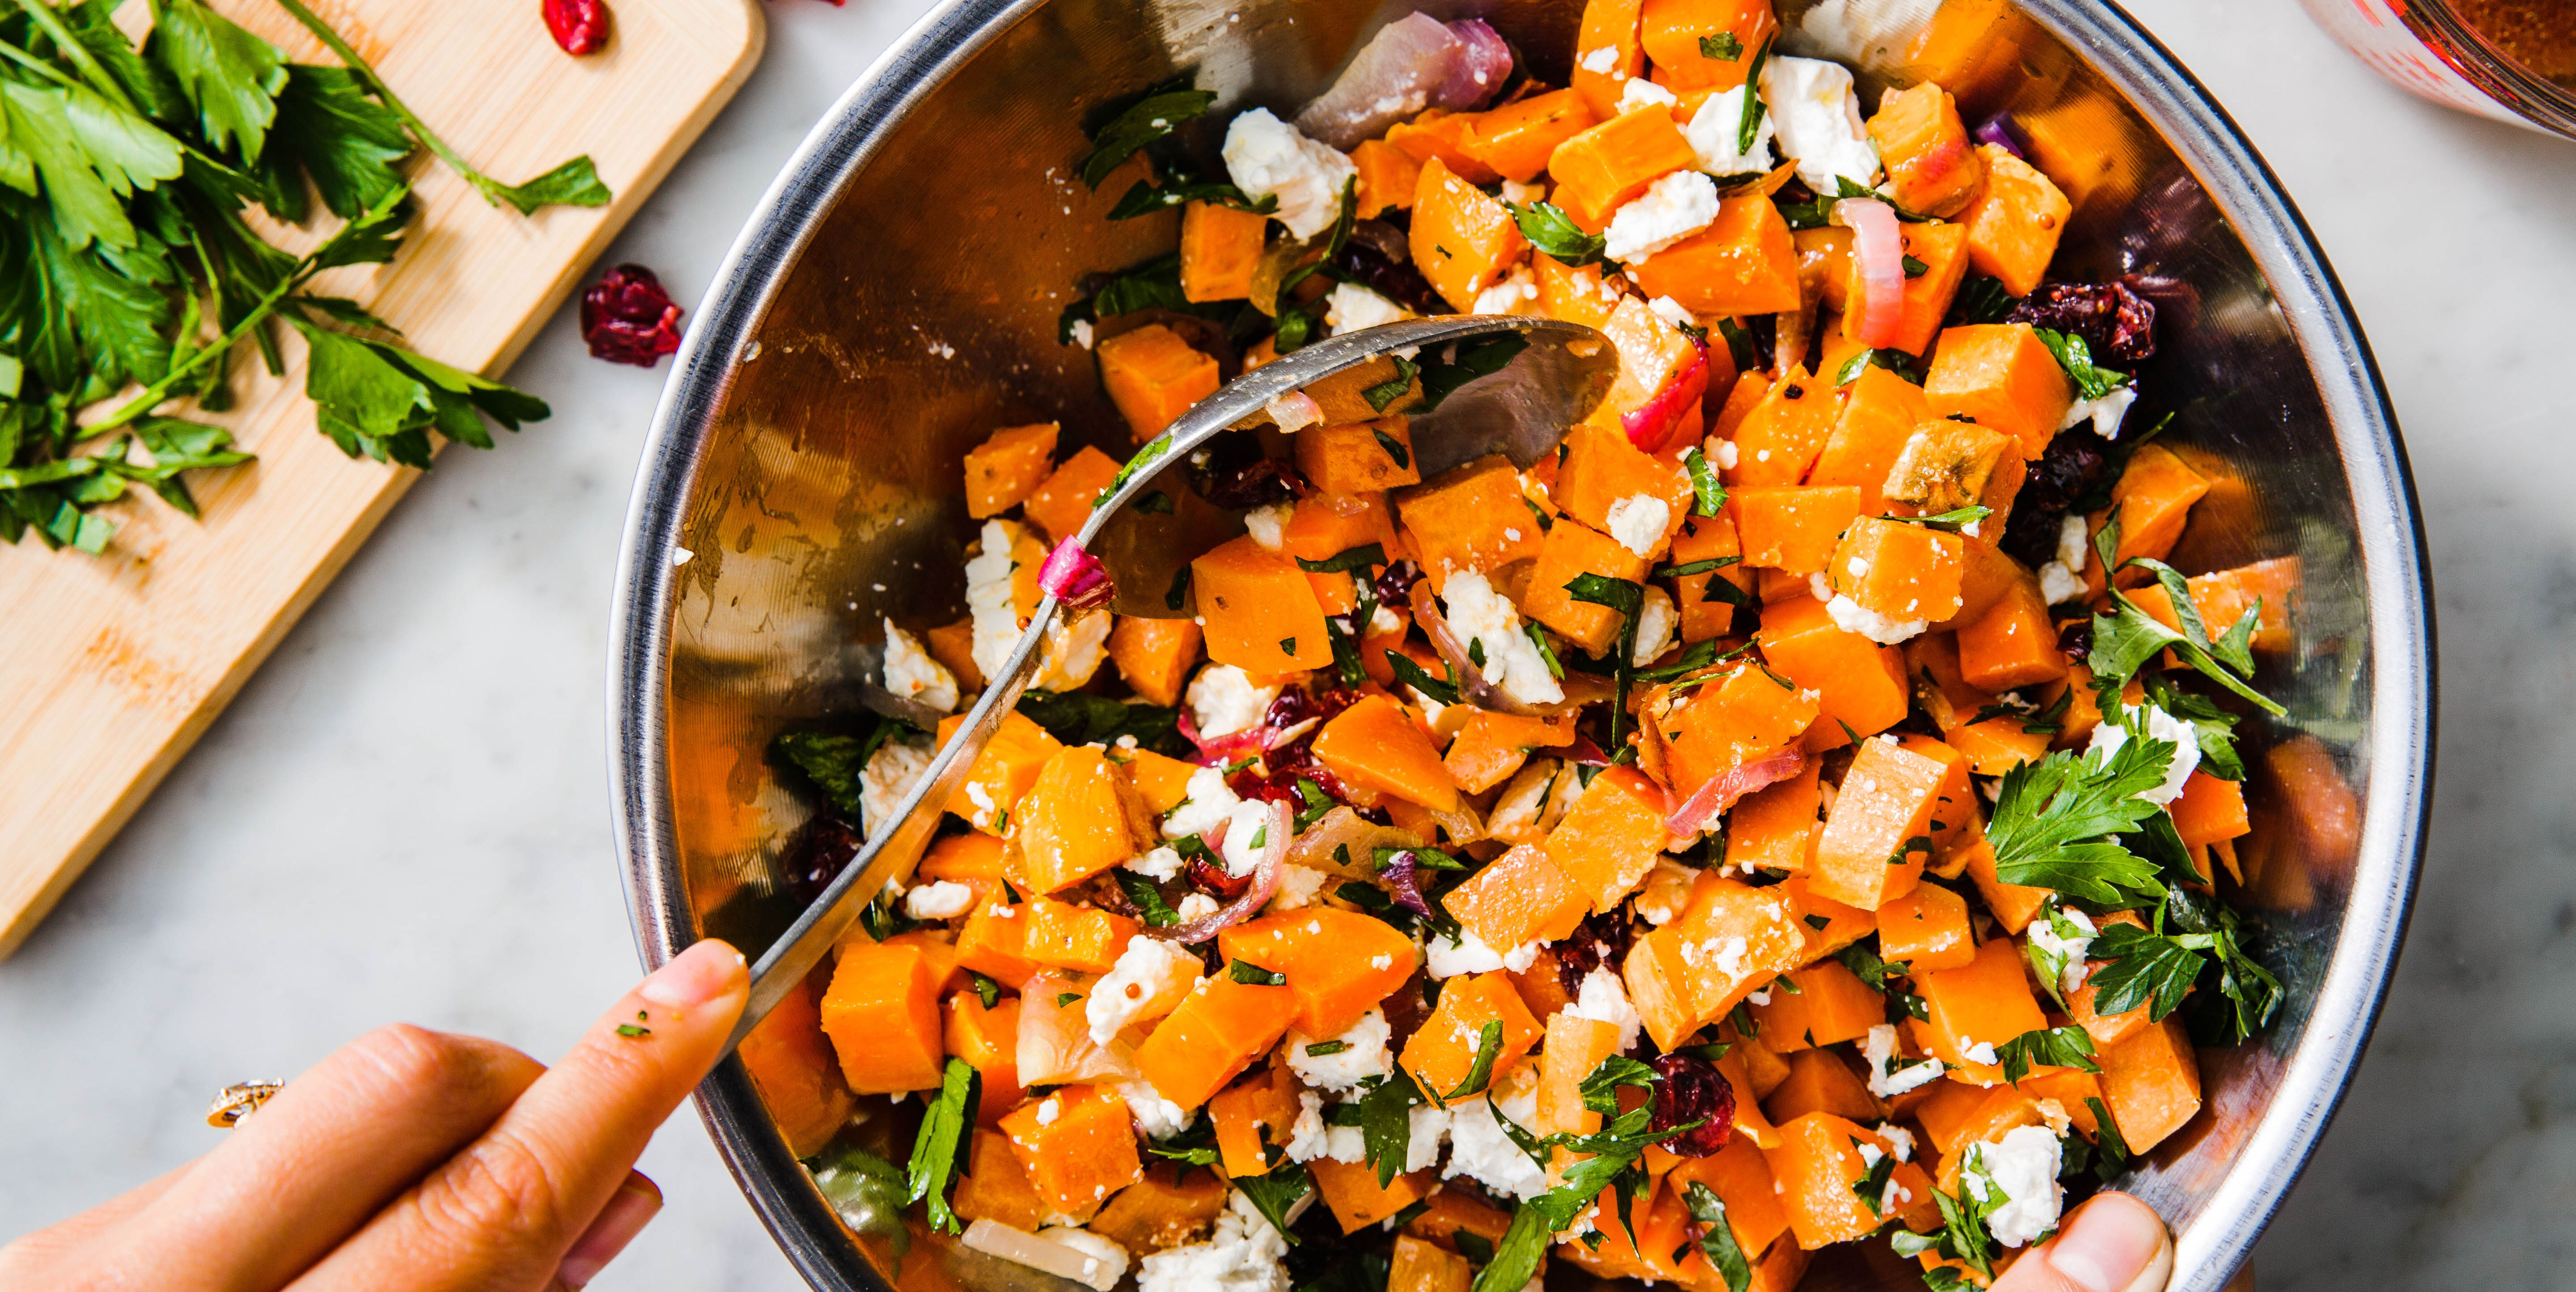 30 Vegetarian Thanksgiving Recipes To Add To Your Holiday Spread